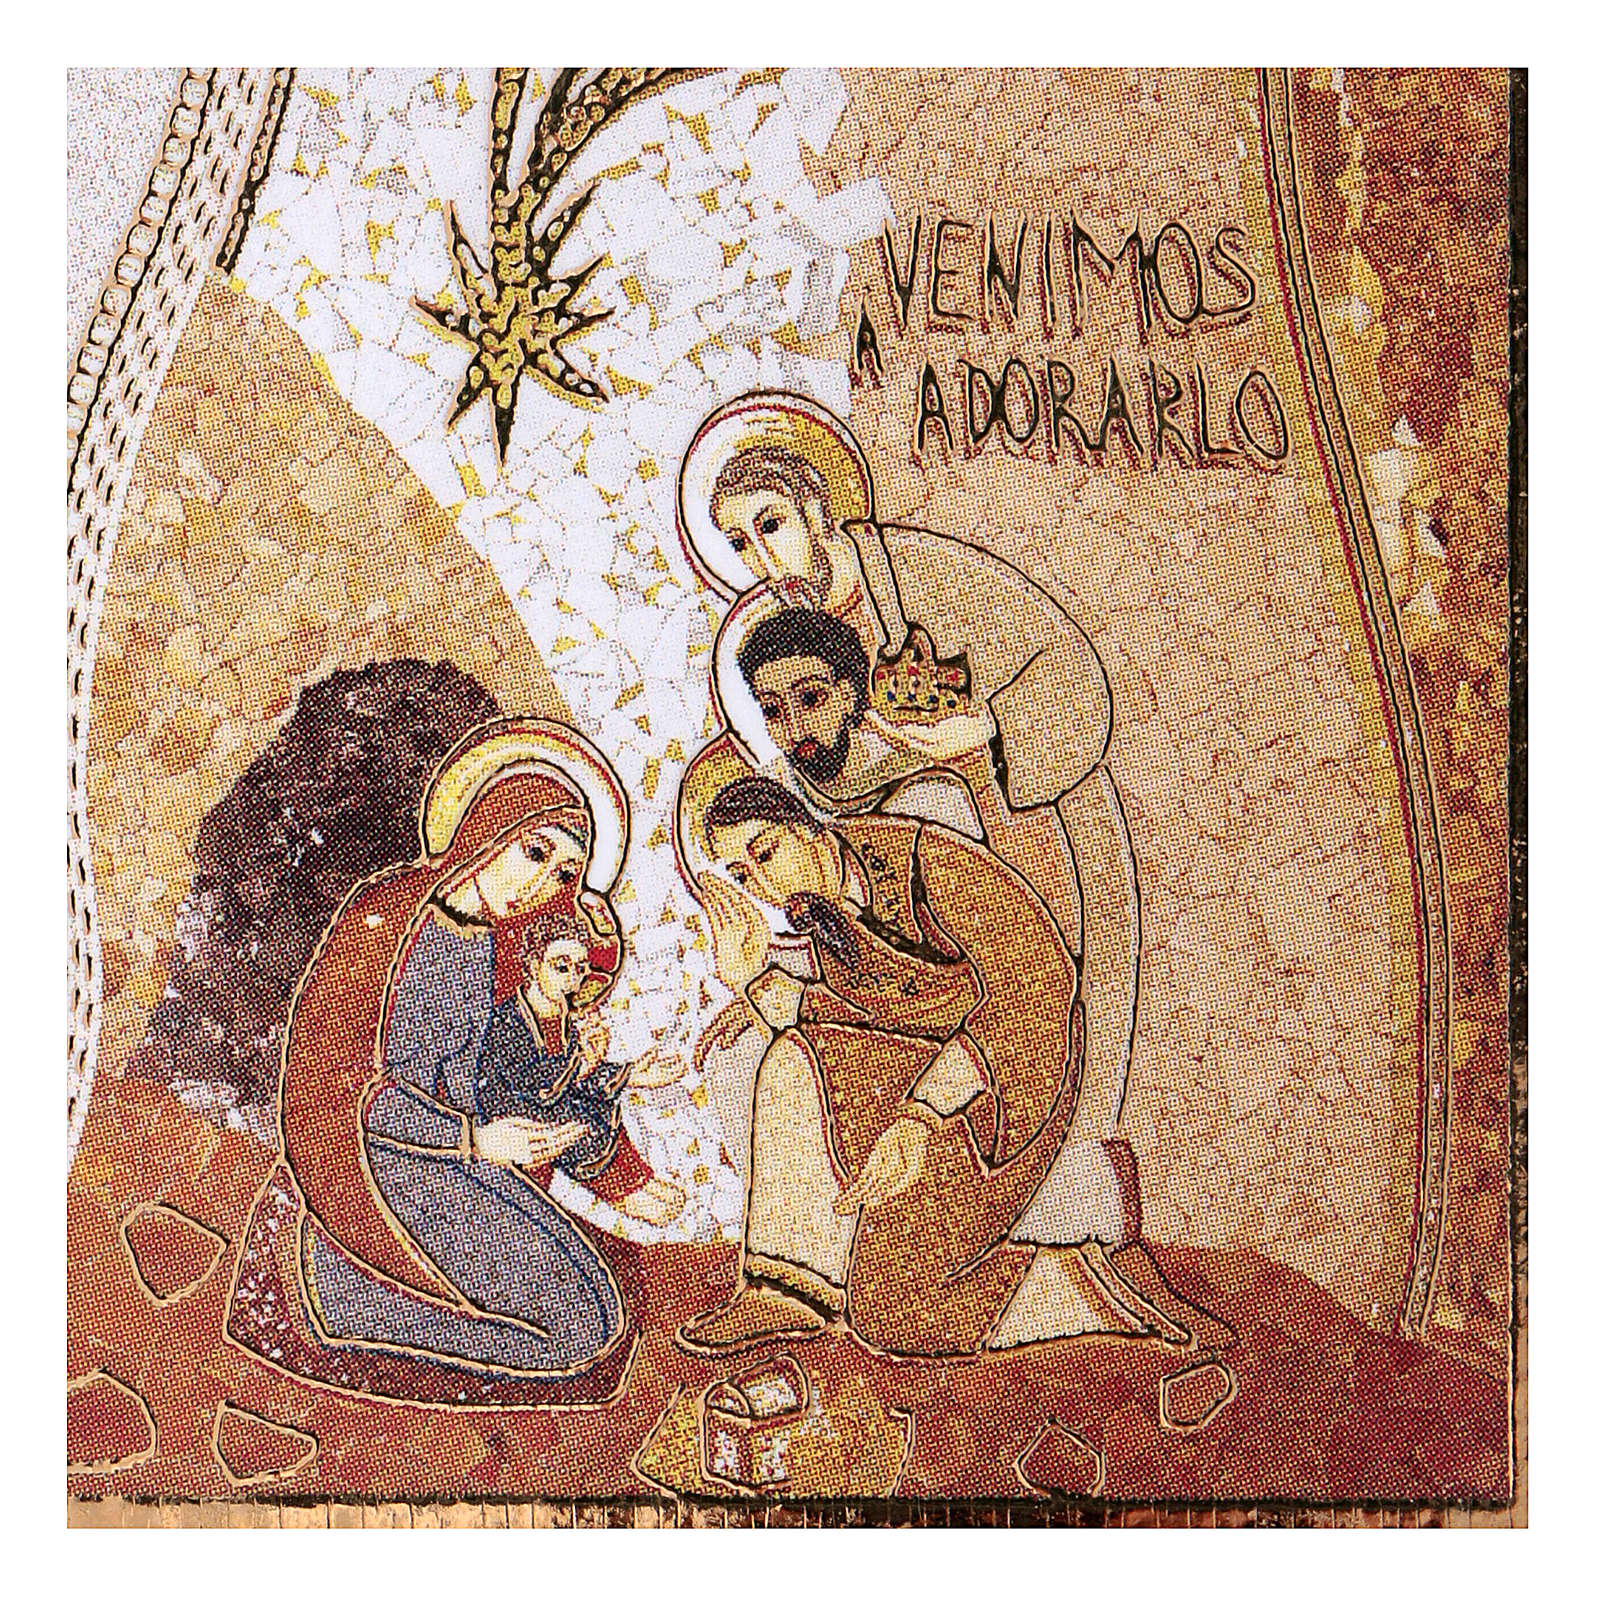 Adoration of the Three Wise Men print by Rupnik 5X5 cm 3